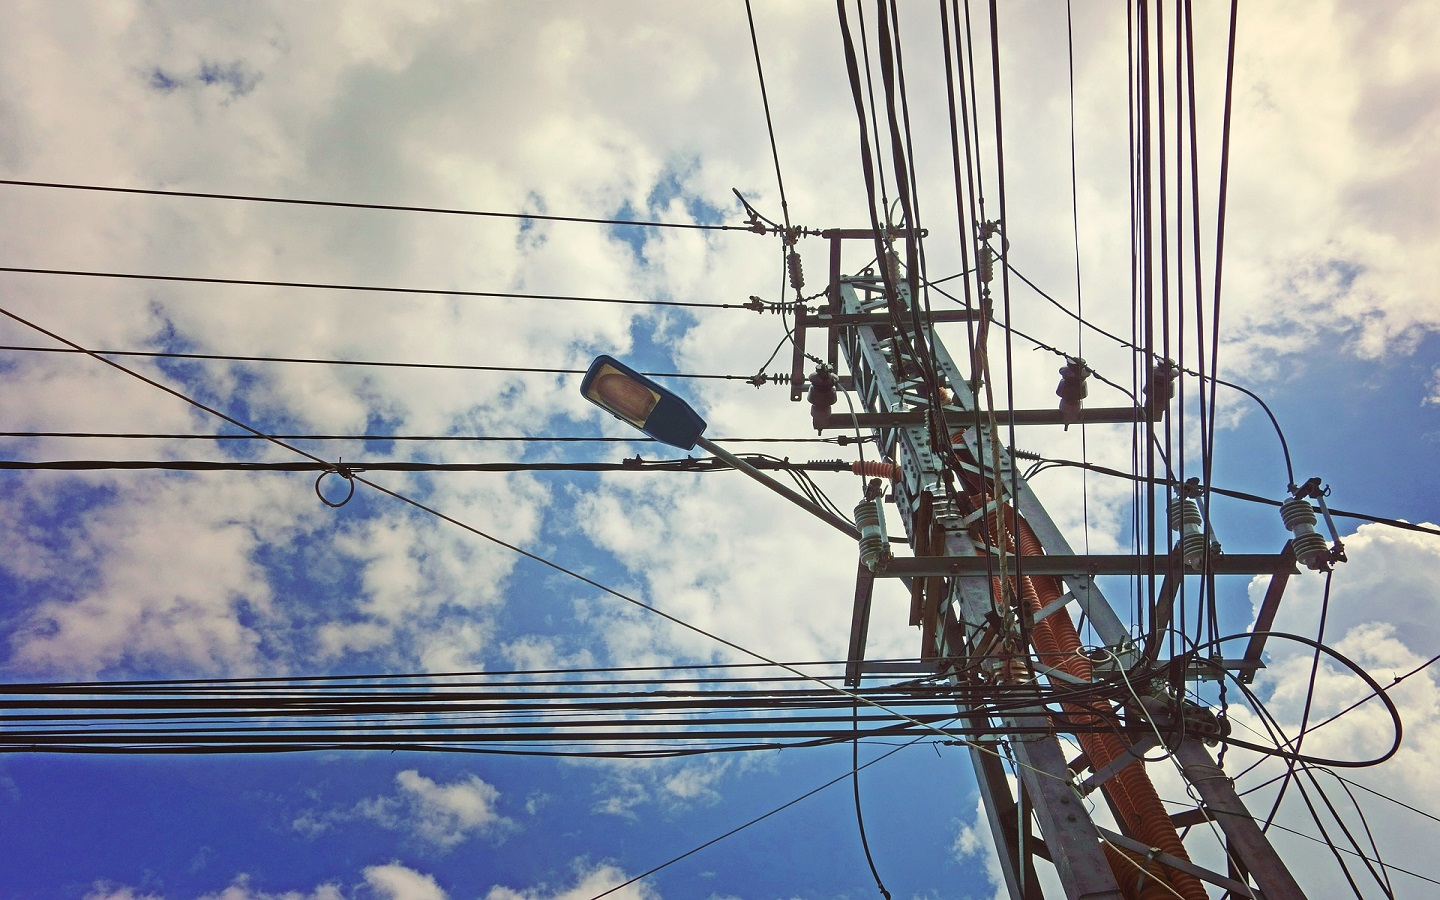 Wires and poles